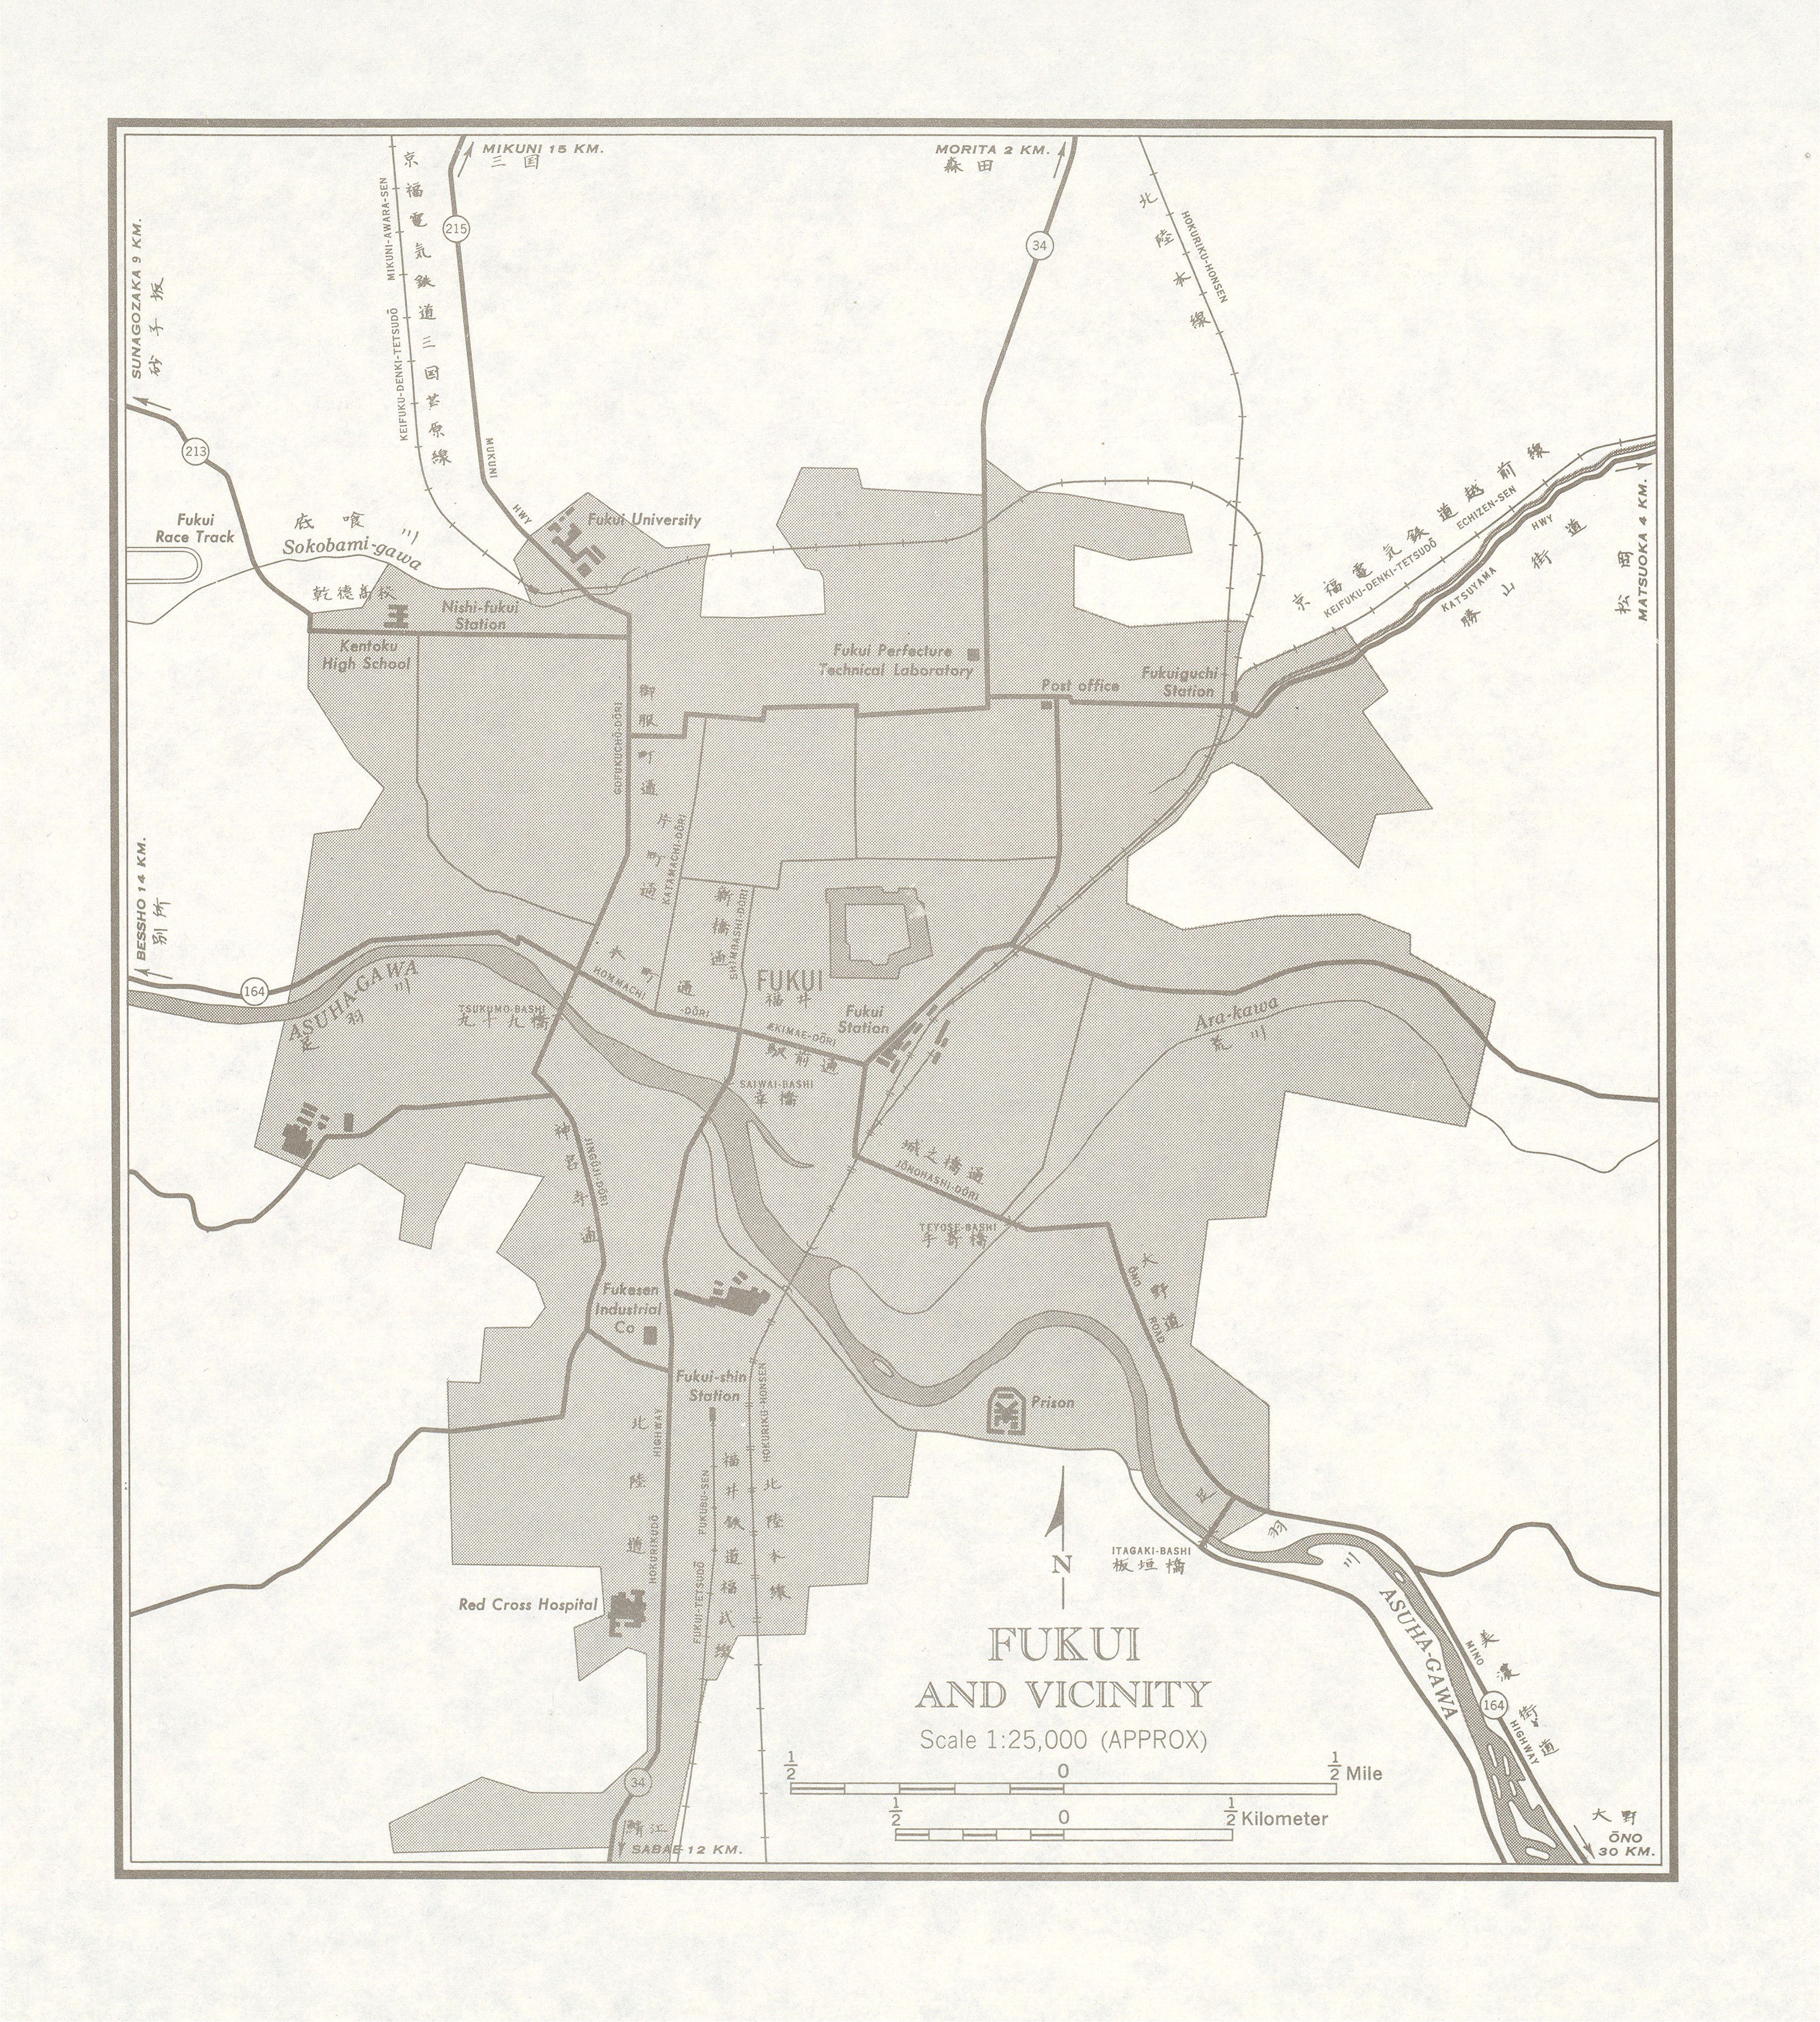 Map of Fukui and Vicinity, Japan 1954